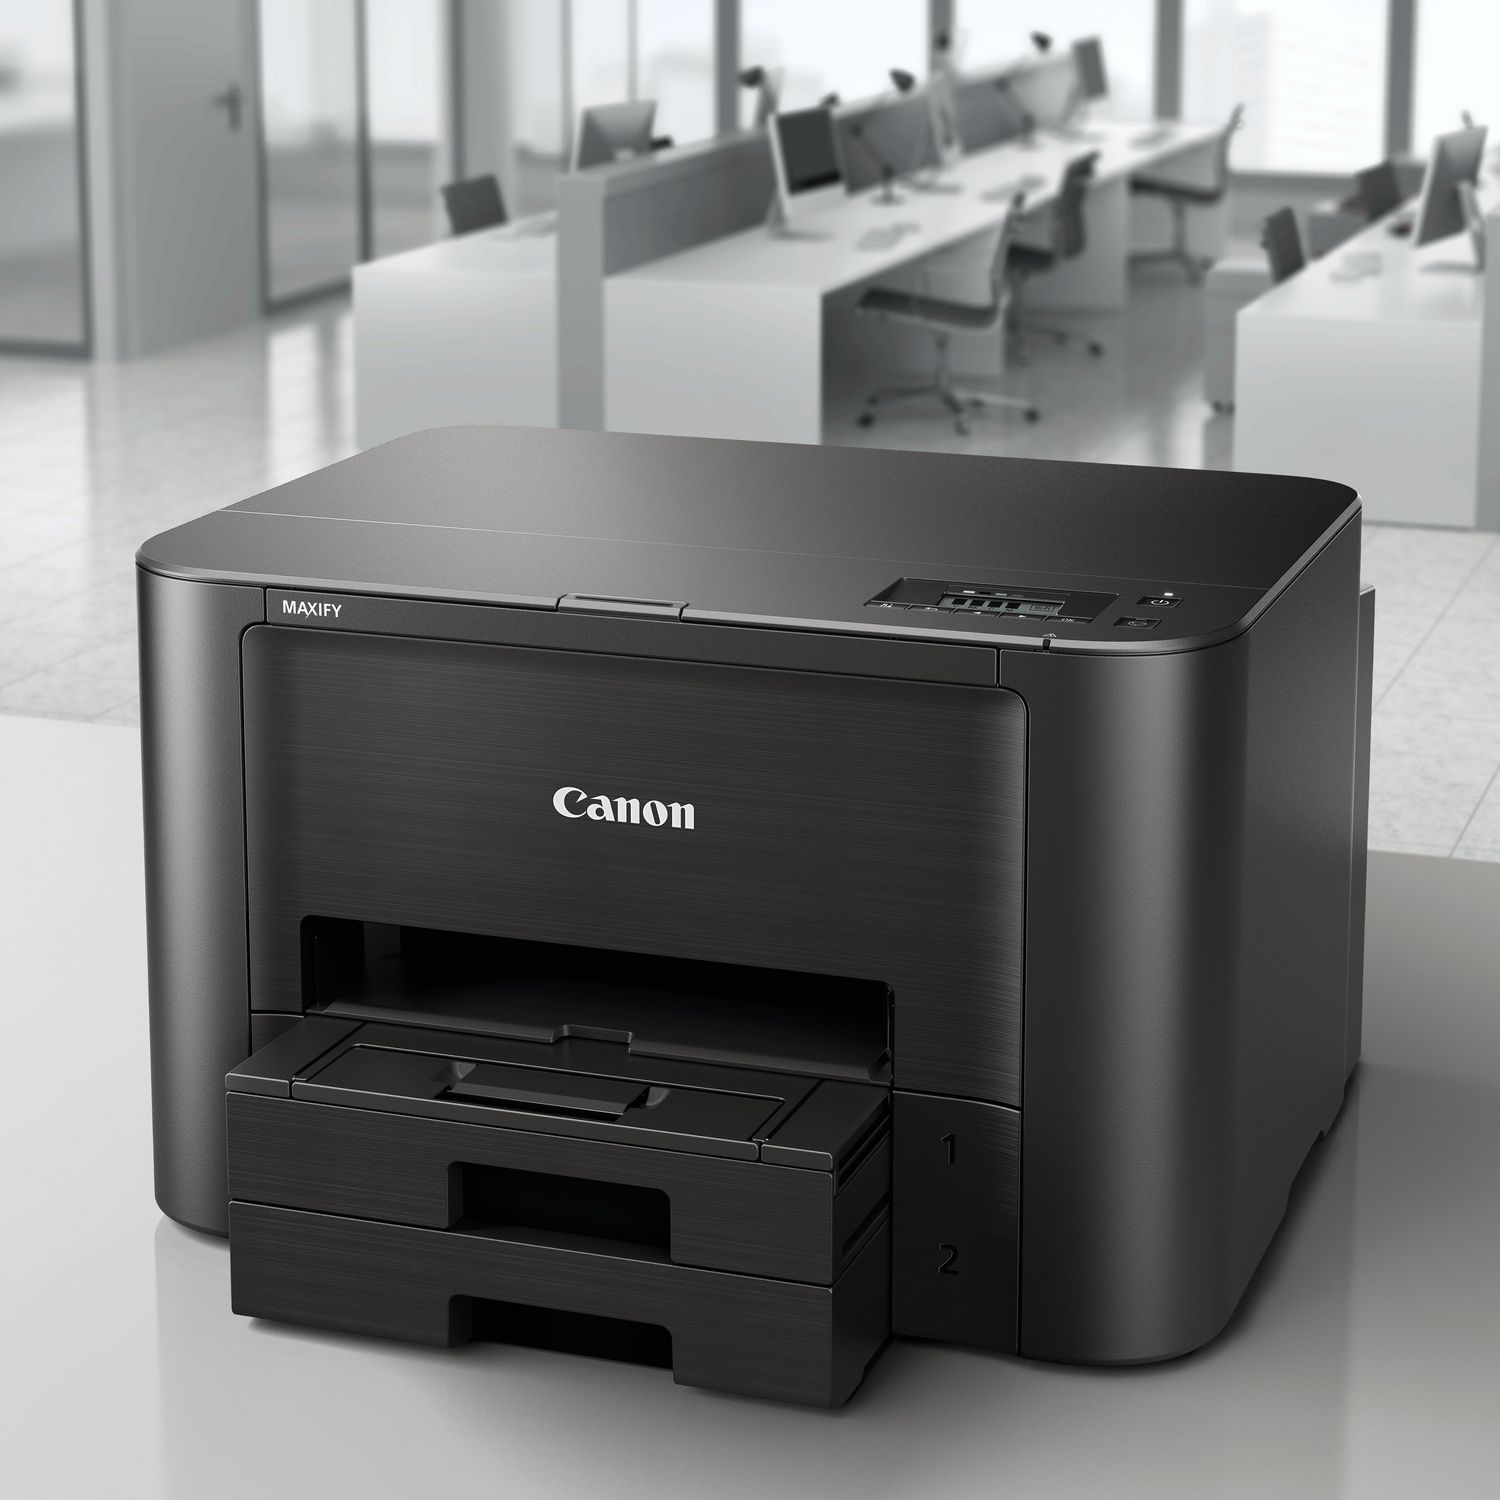 canon maxify ib4150 in wlan drucker canon deutschland shop. Black Bedroom Furniture Sets. Home Design Ideas